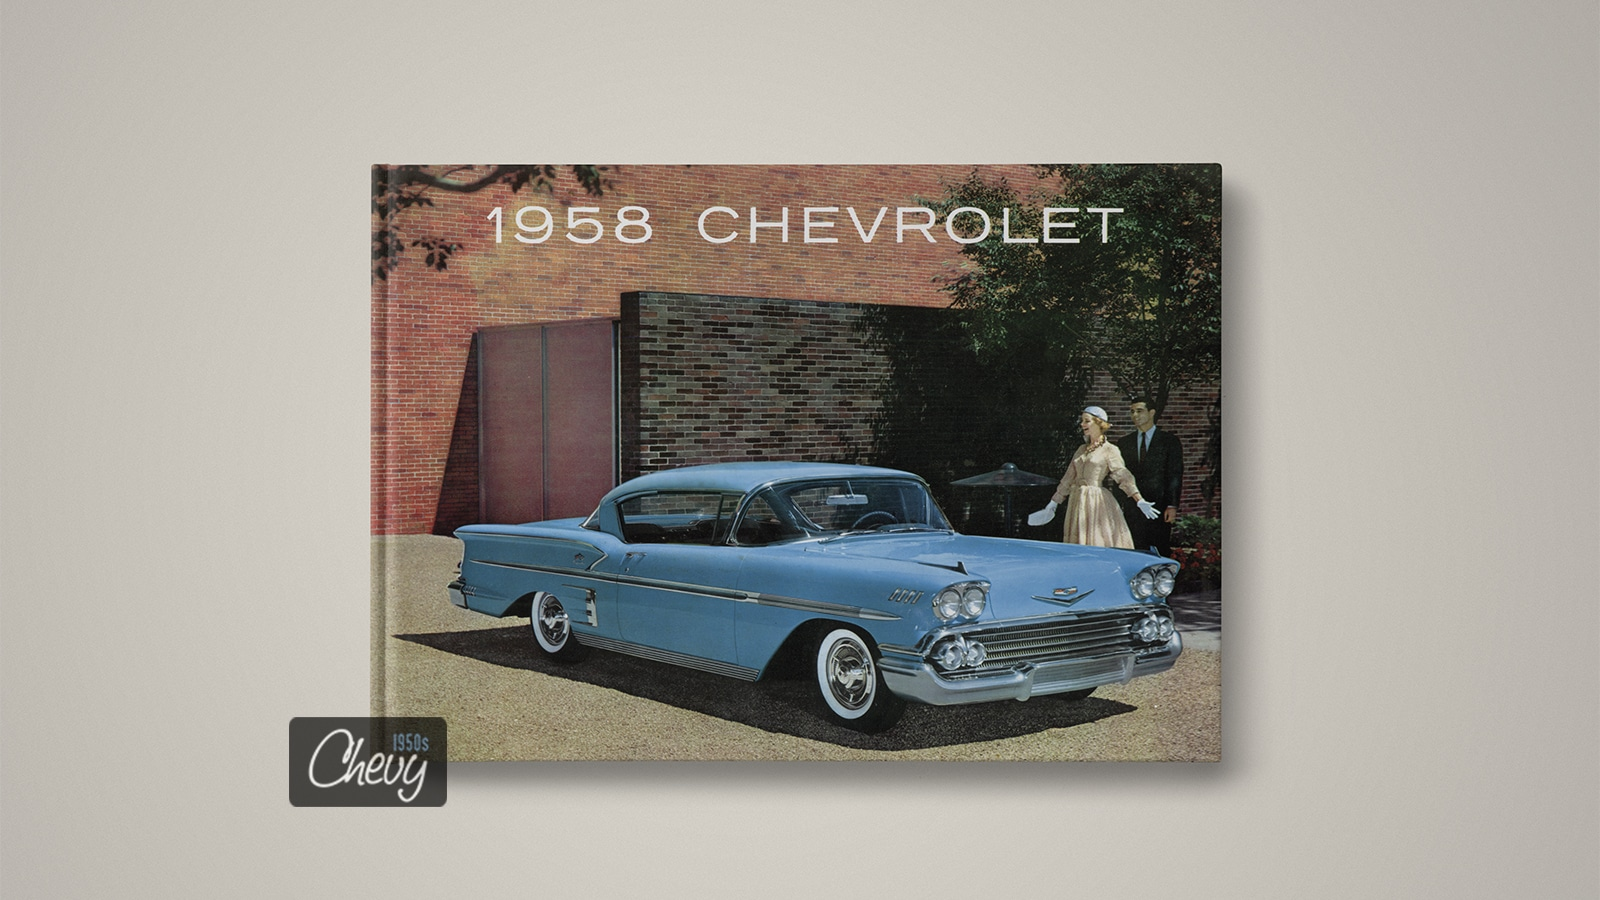 1958 Chevrolet Showroom Album